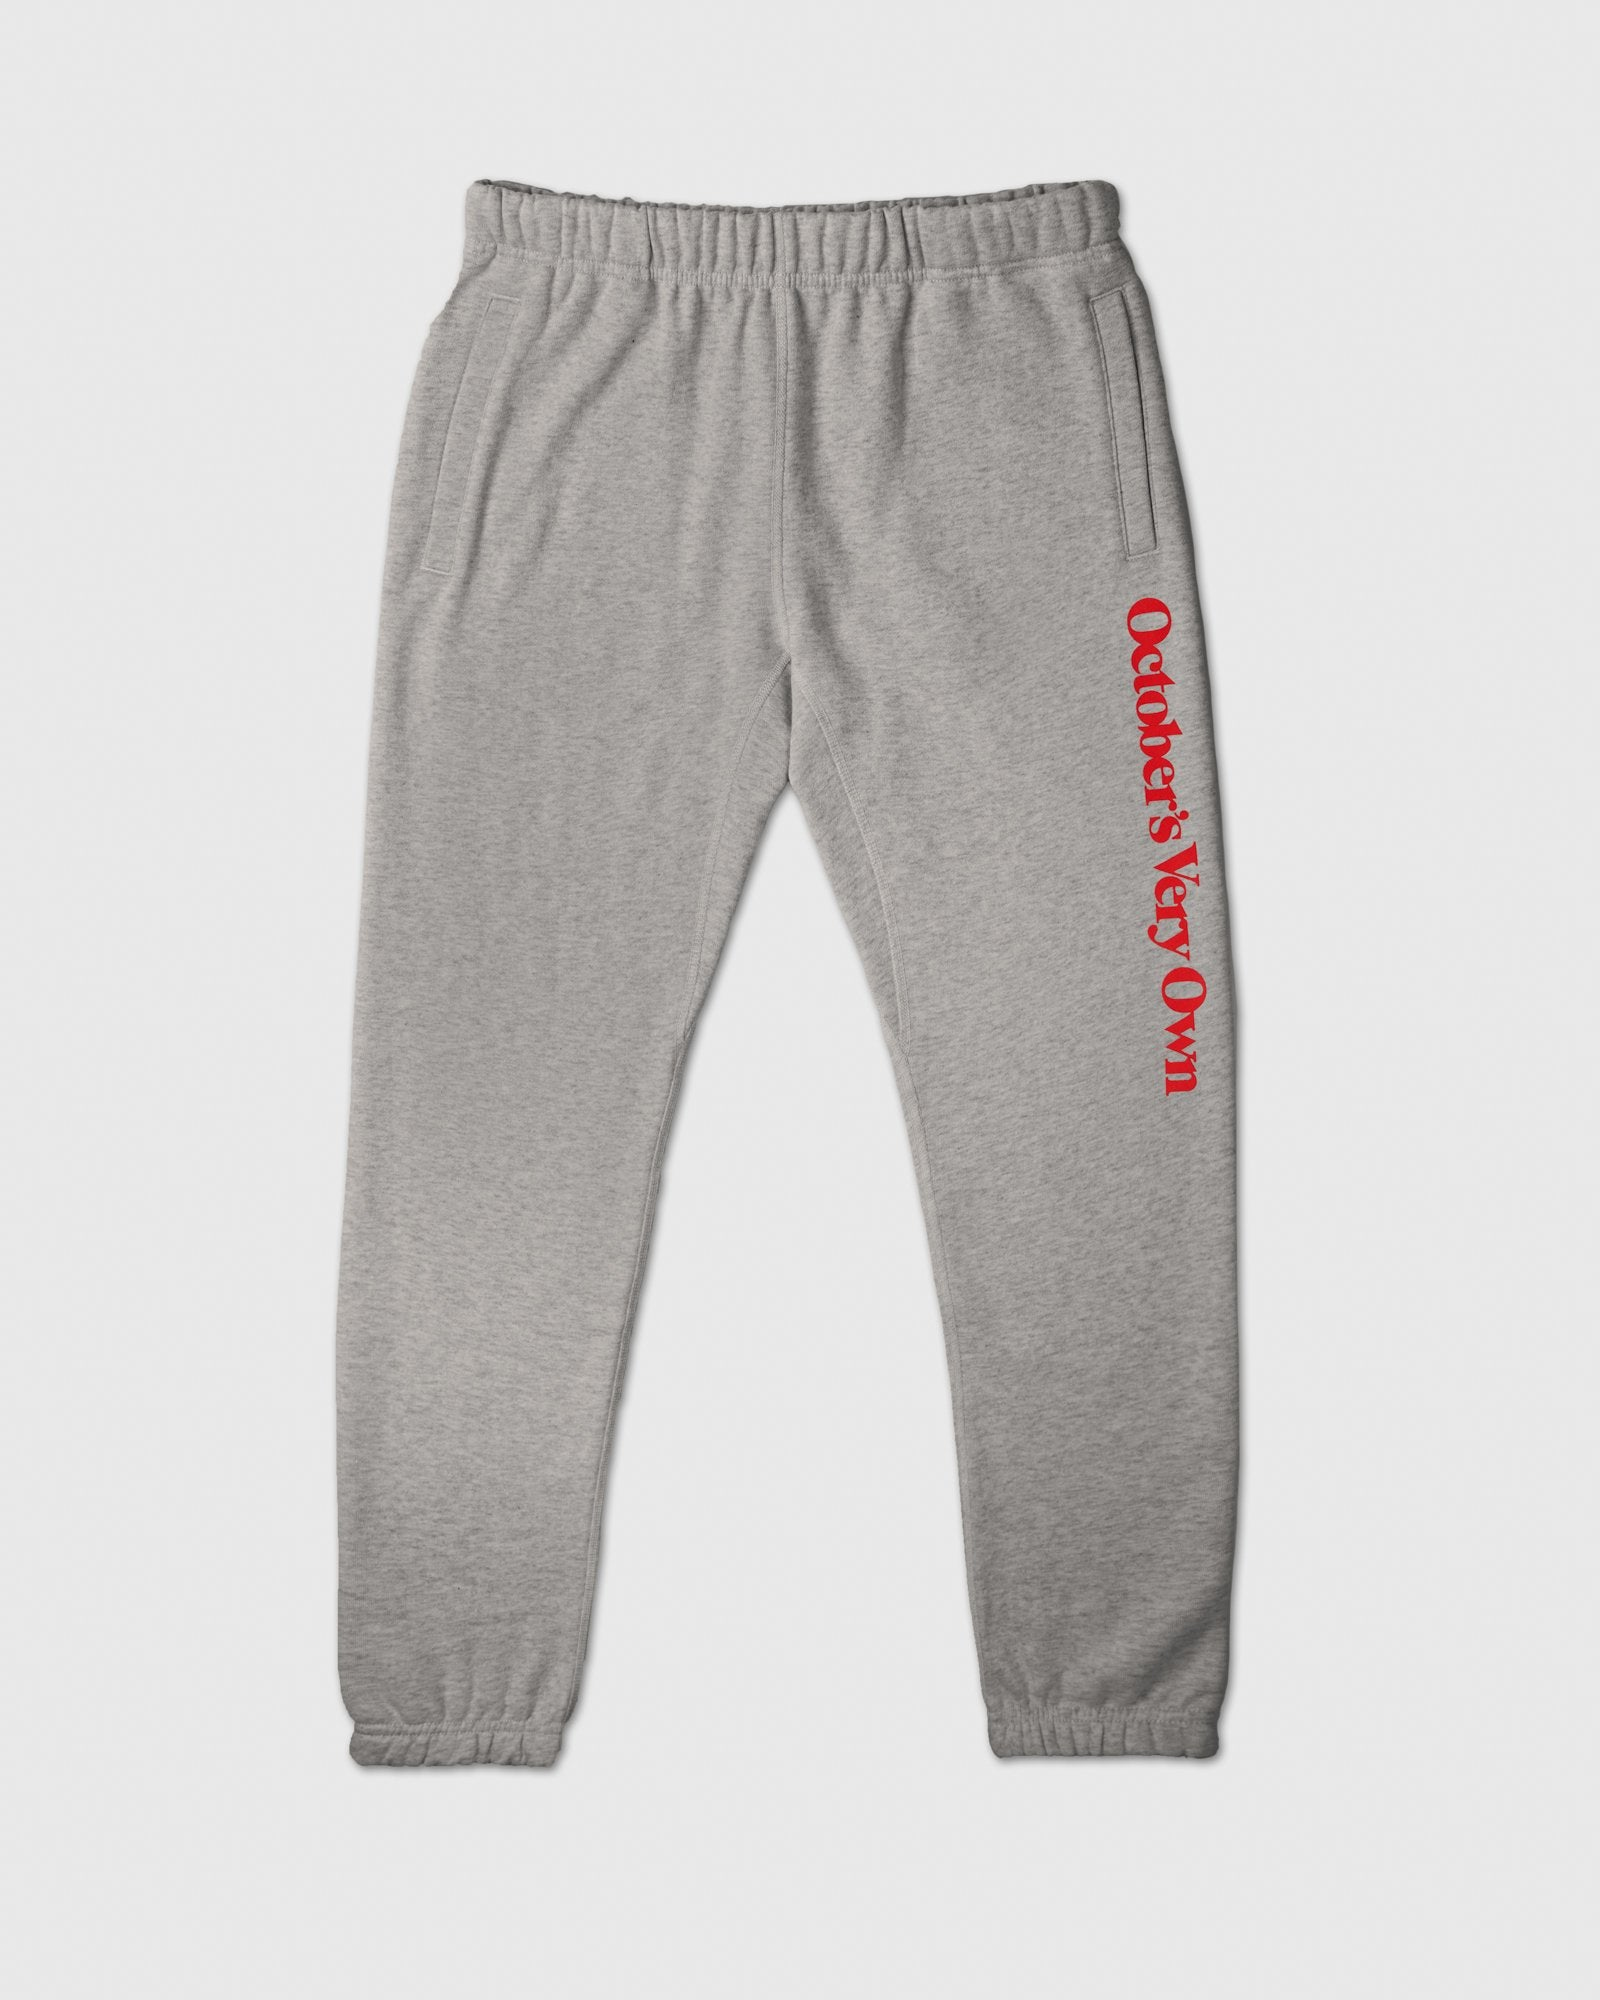 FAMILIA WORDMARK SWEATPANT - HEATHER GREY IMAGE #1